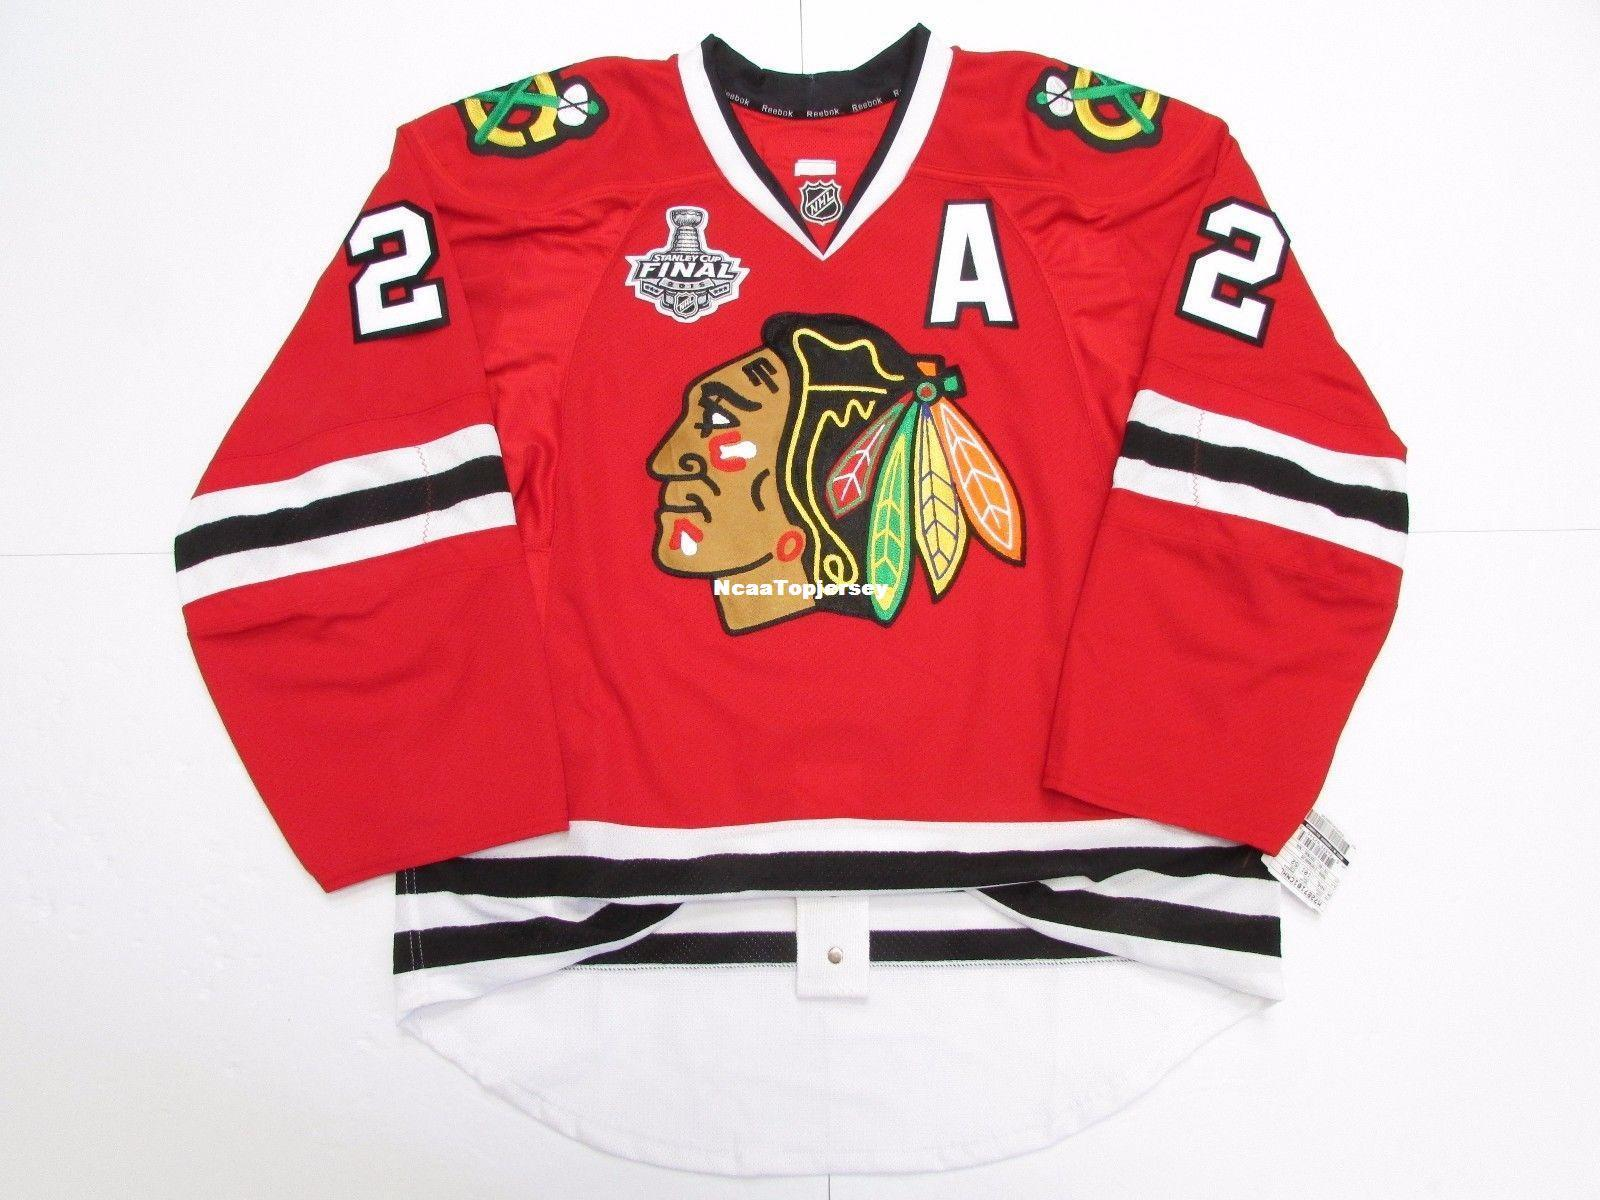 Cheap Custom KEITH CHICAGO BLACKHAWKS TEAM ISSUED 2015 STANLEY CUP JERSEY  Stitch Add Any Number Any Name Mens Hockey Jersey XS-6XL Retro Hockey Jersey  Cheap ... d1a6ee292